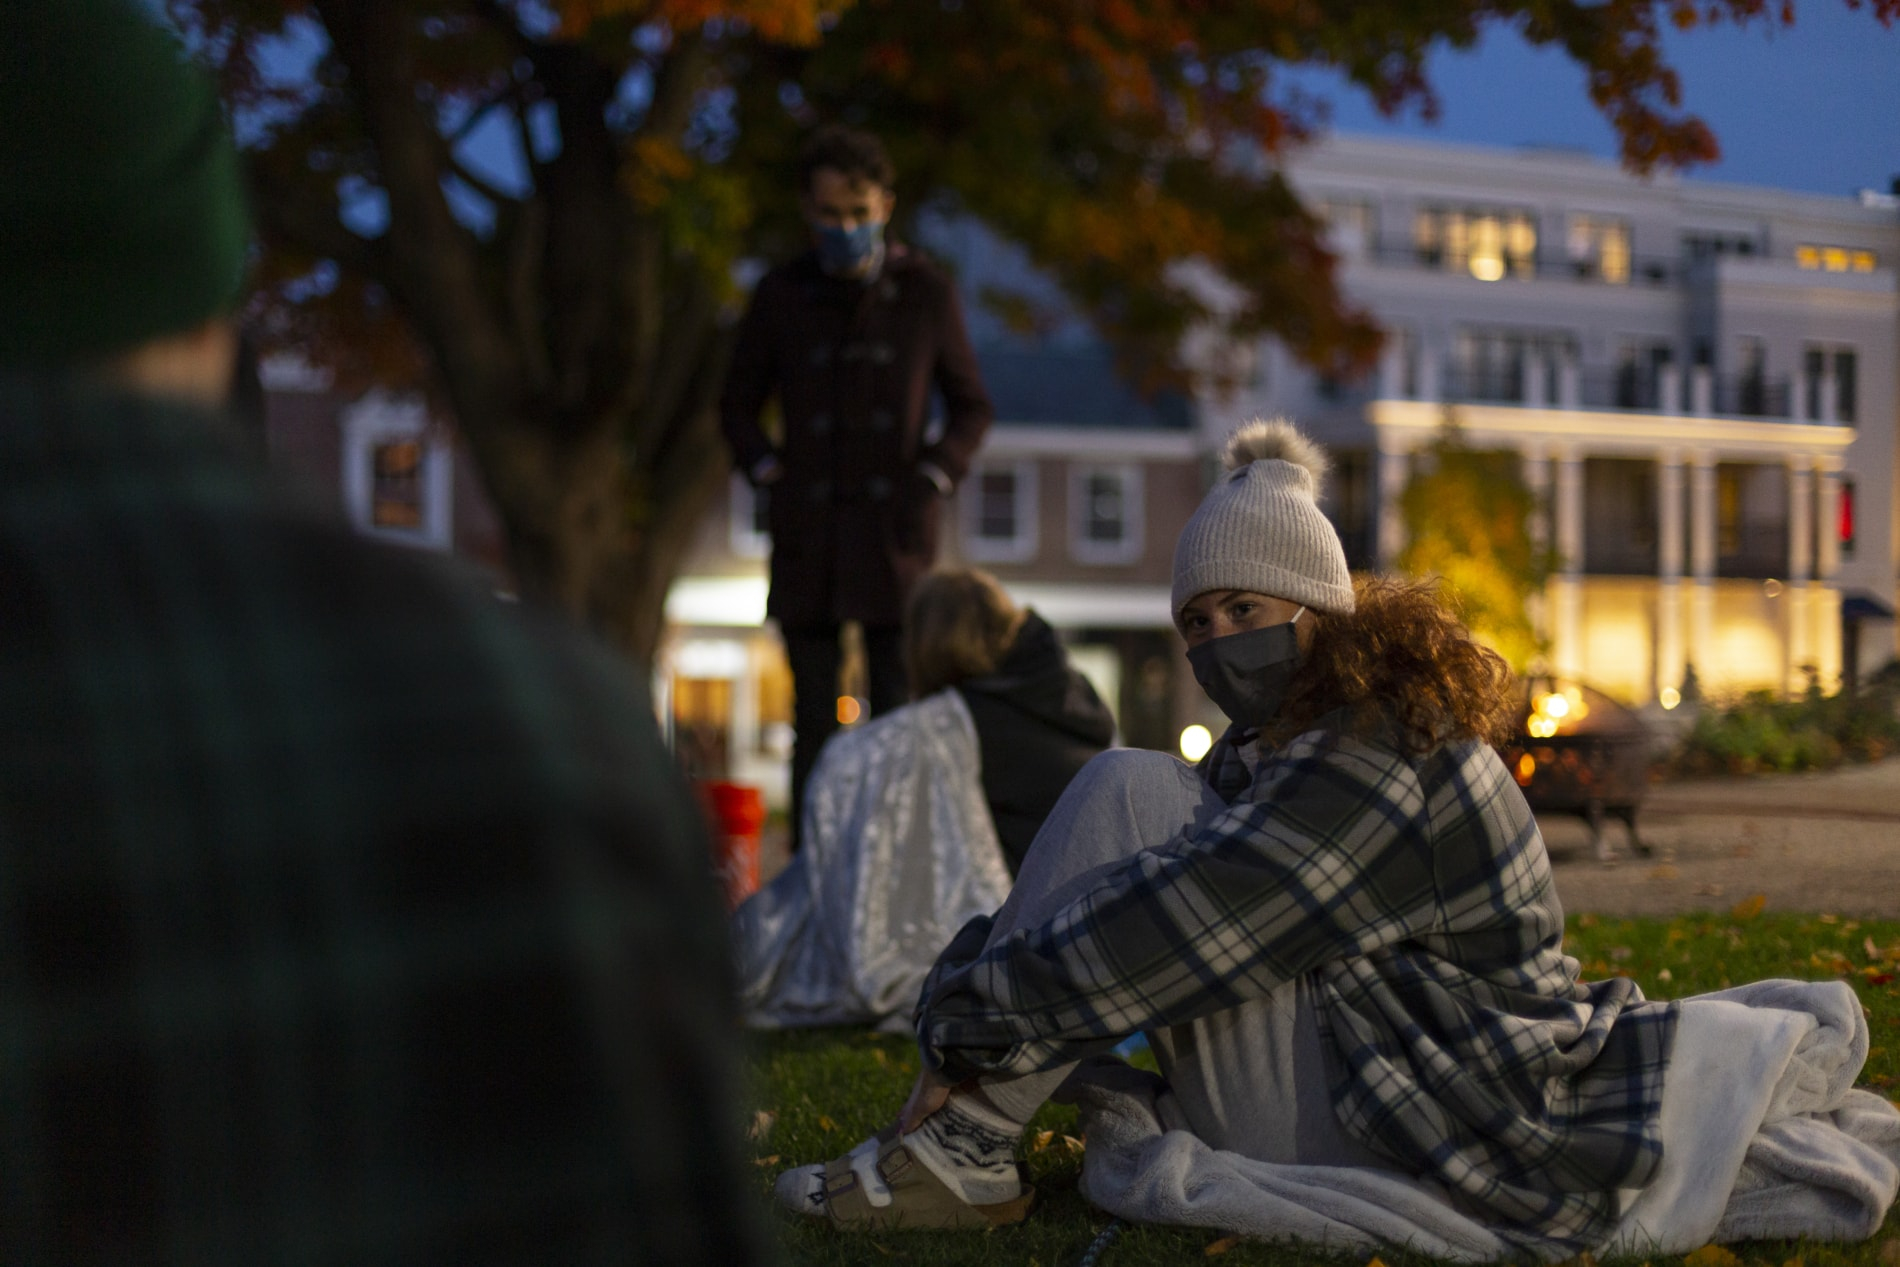 A teenage girl sits on the grass at an evening youth group event